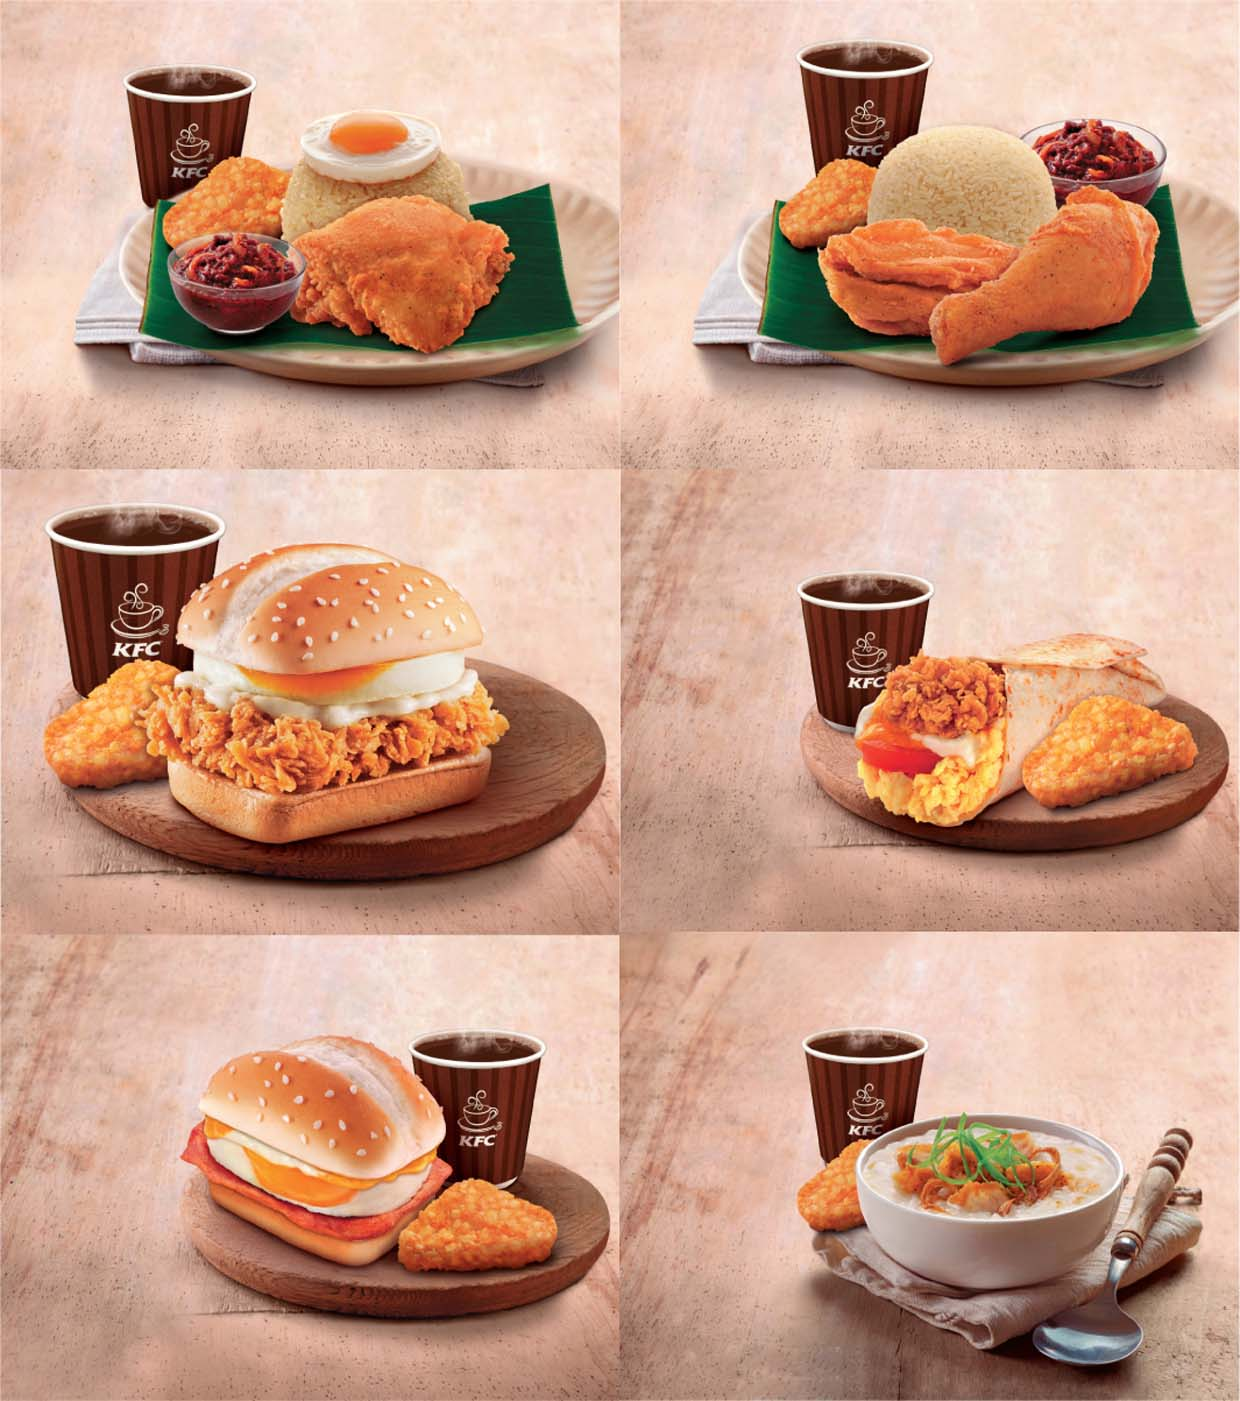 kfc malaysia Save 💰 with 100% working kfc promo codes in malaysia for april 2018 grab 👍 today's discount voucher / coupons - new.